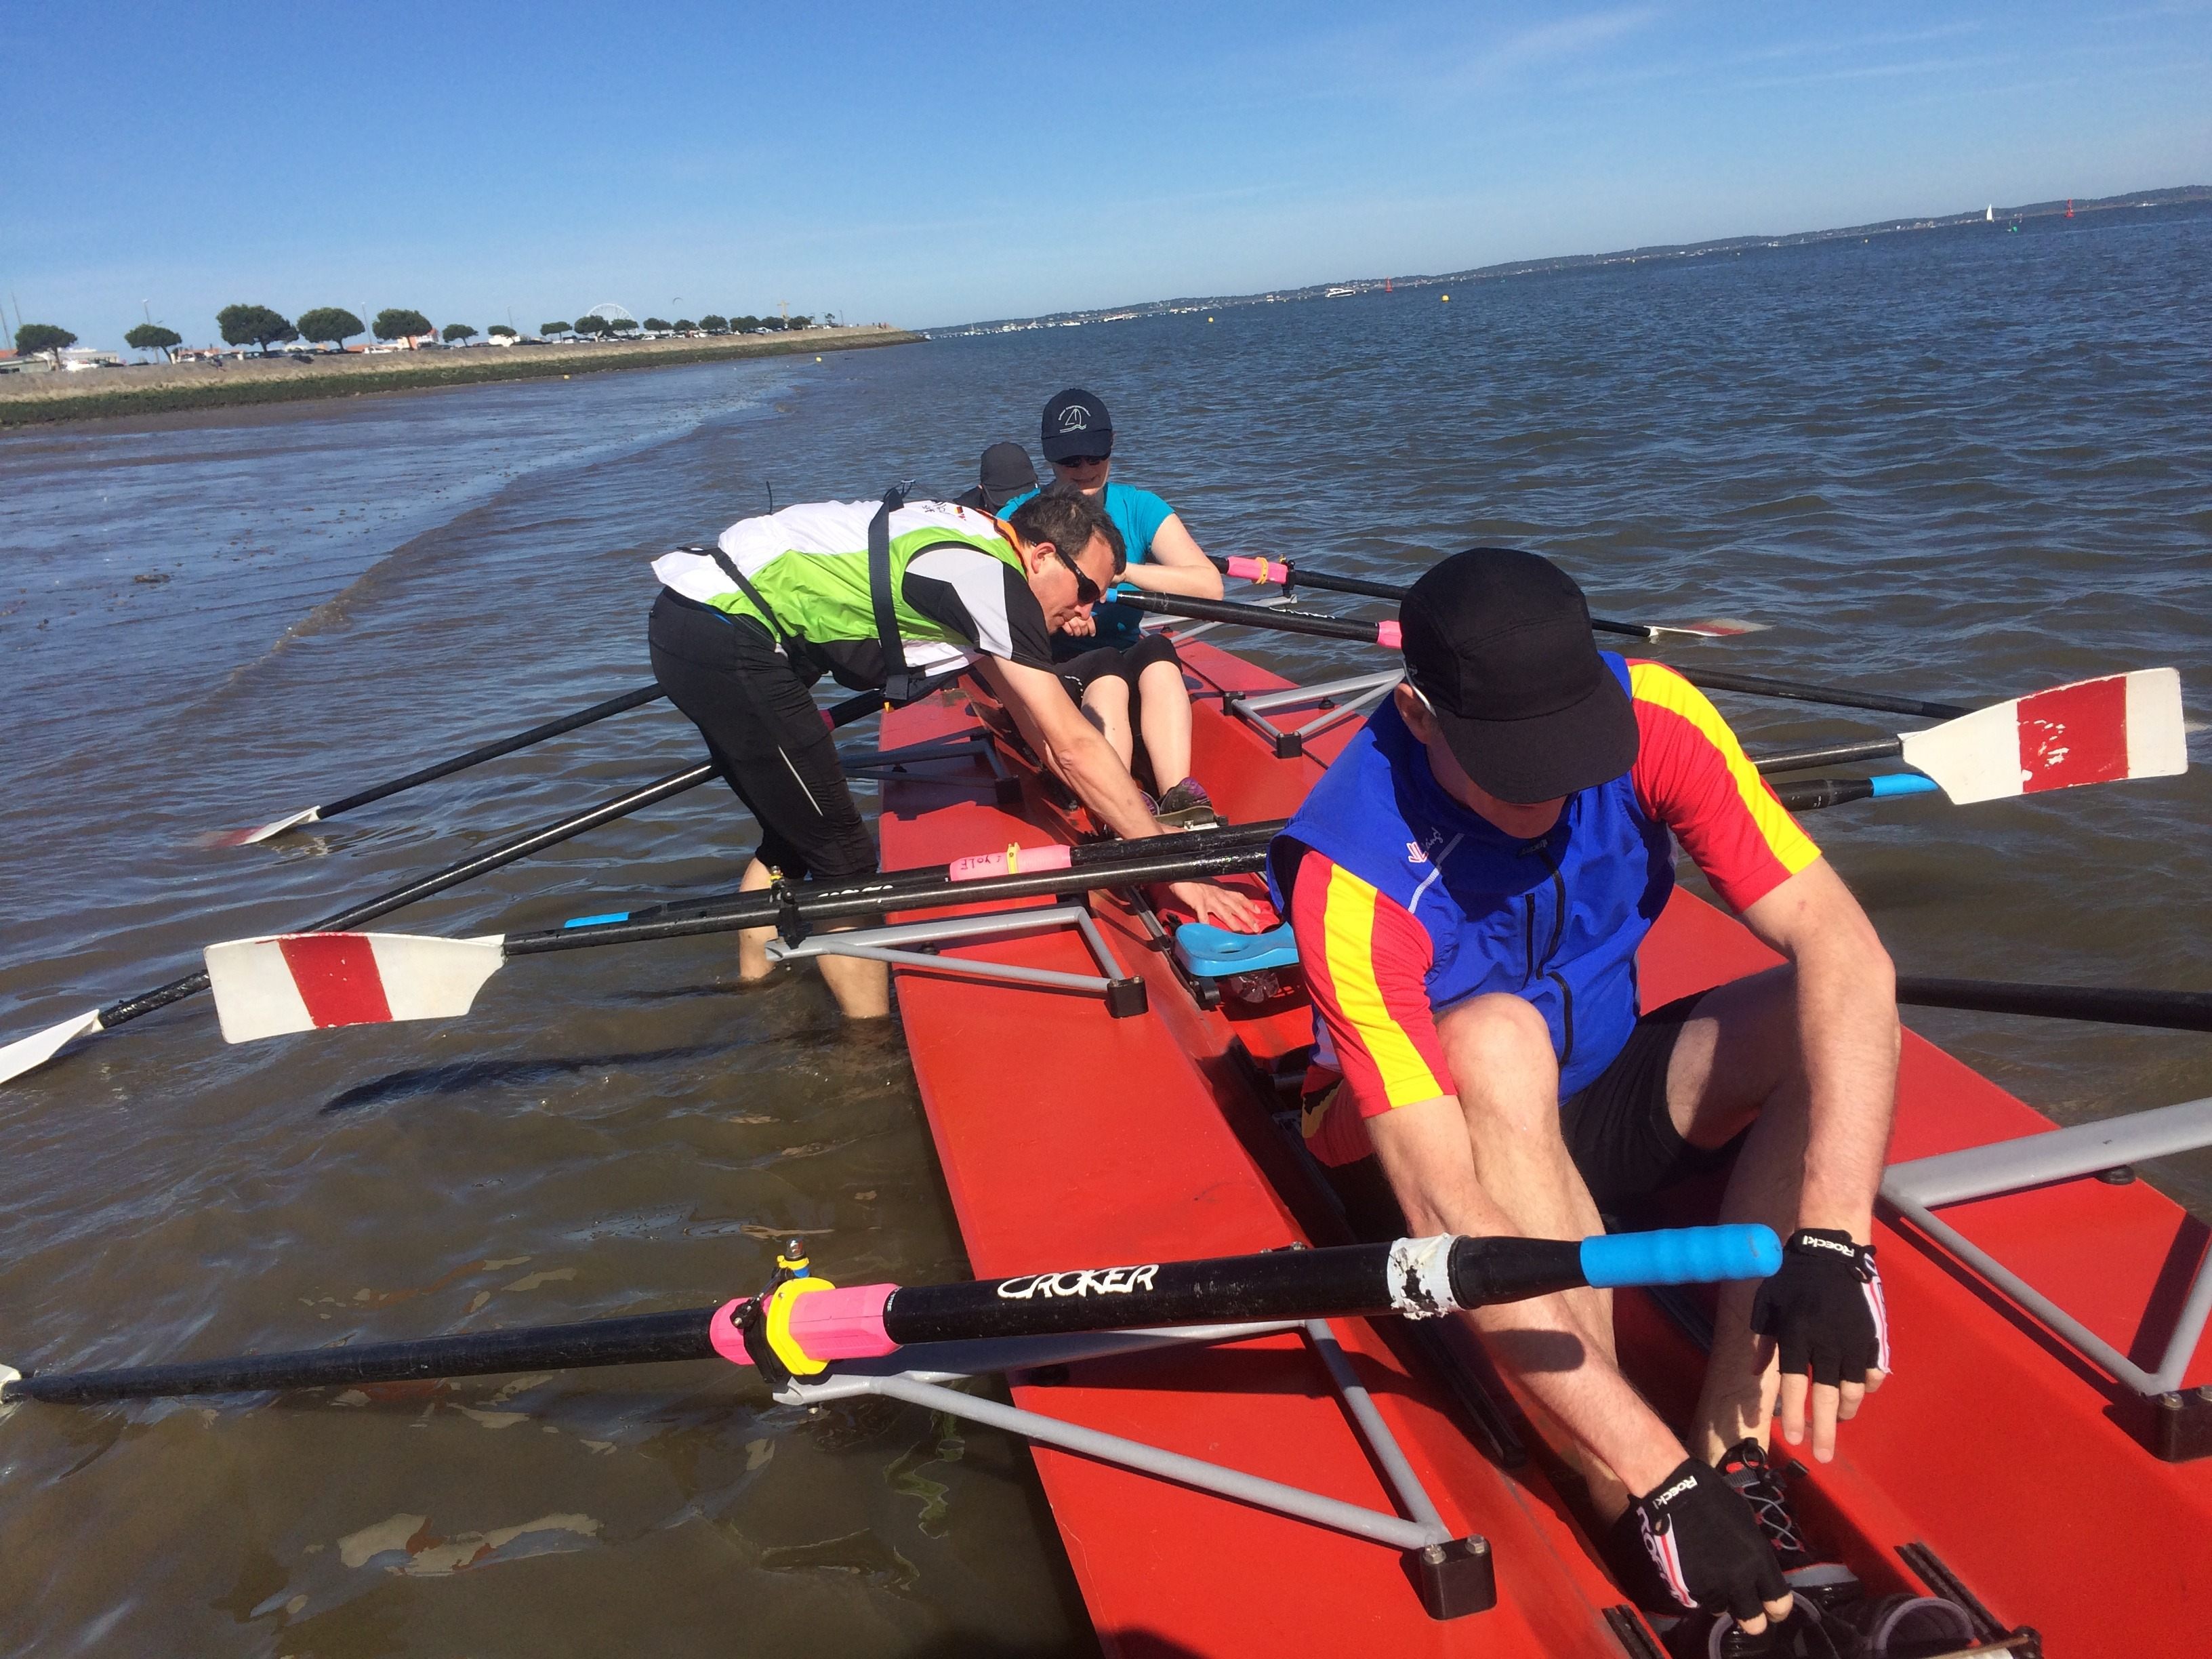 How to take care of your feet after rowing